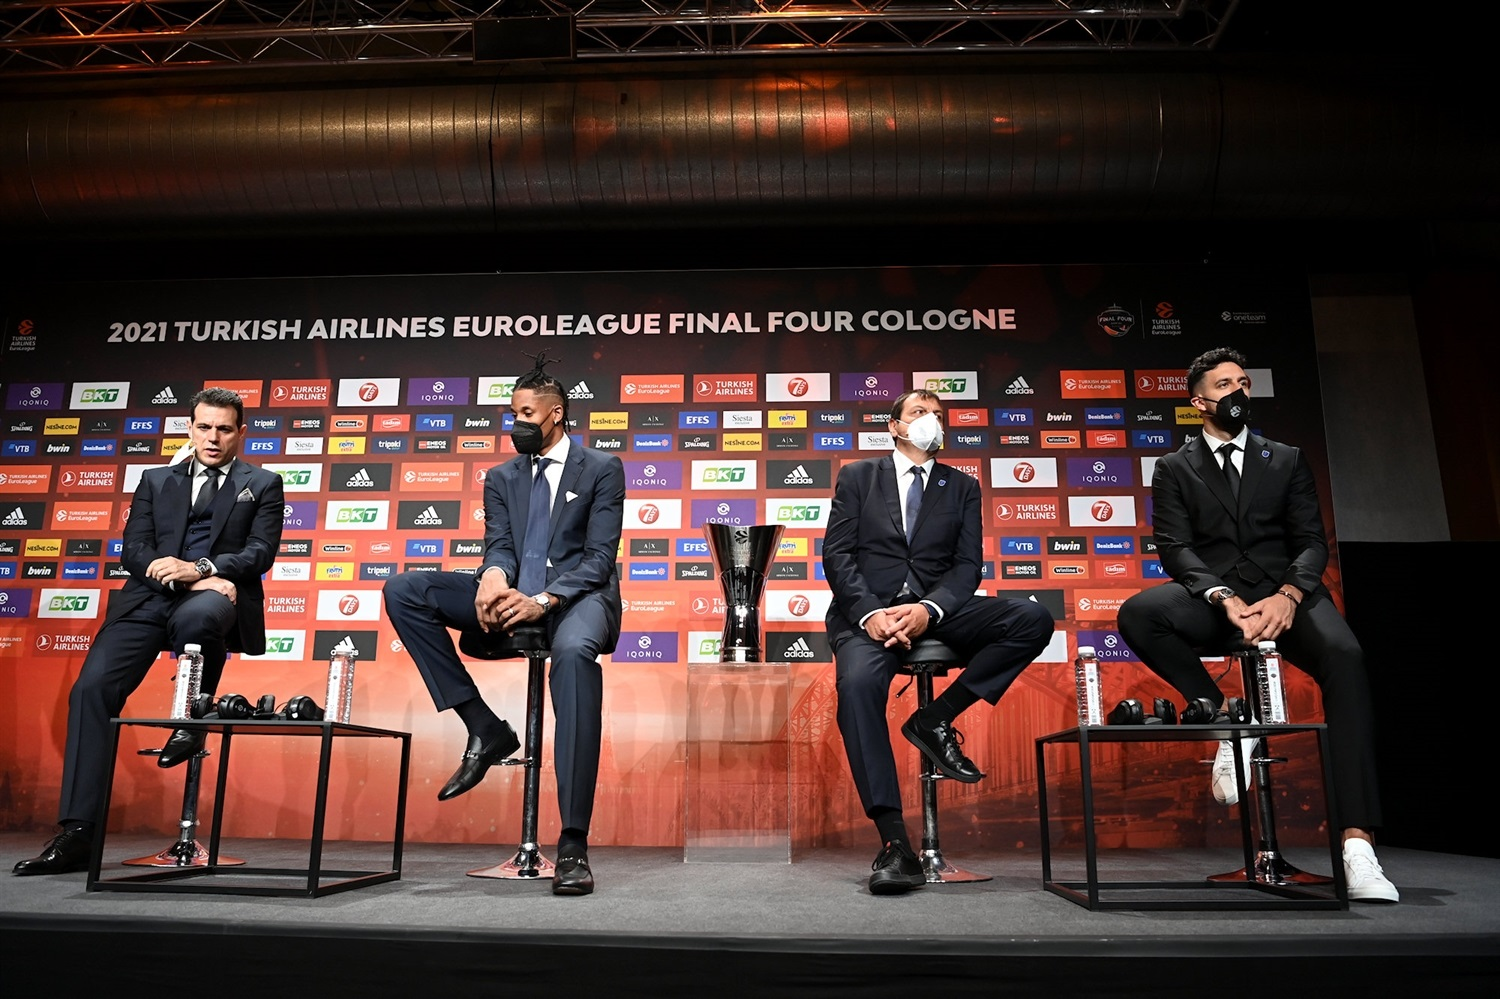 CSKA Moscow vs. Anadolu Efes Istanbul - Opening Press Conference - Final Four Cologne 2021 - EB20